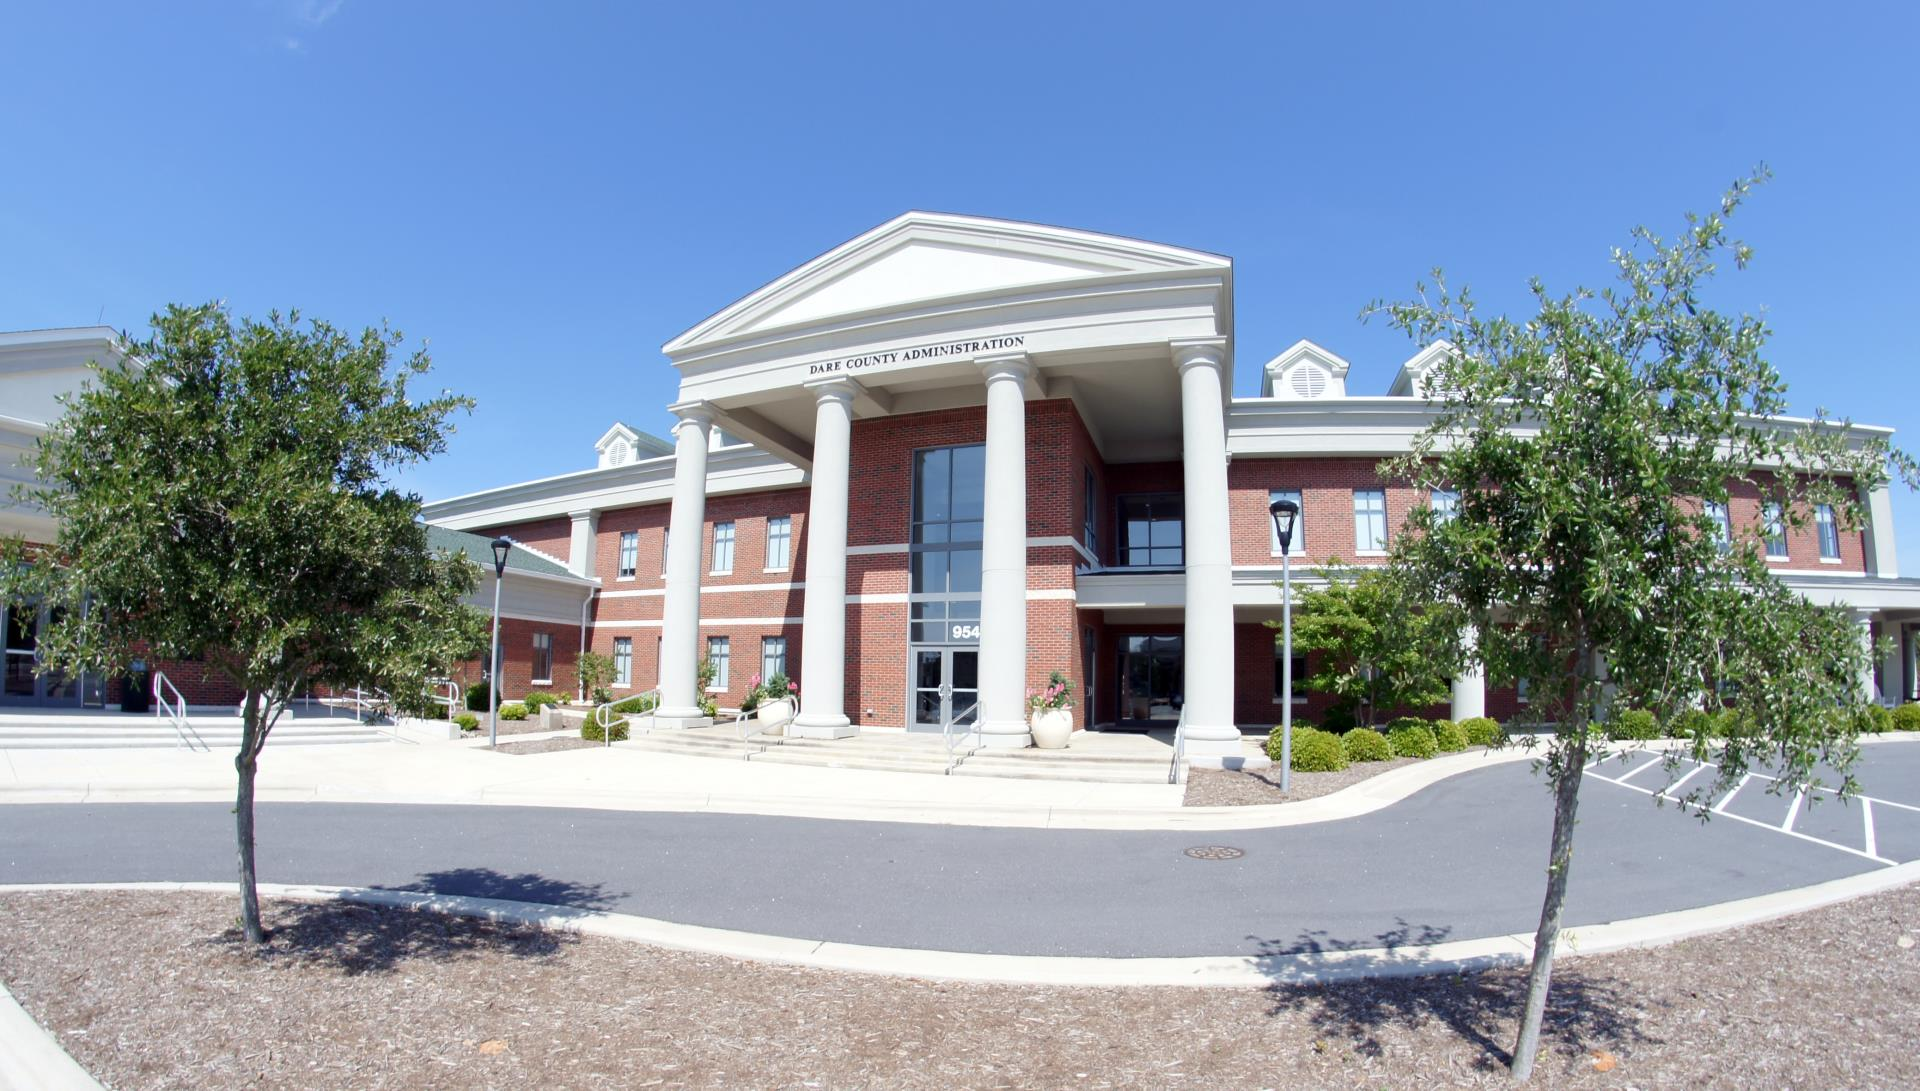 Dare County Administration Building